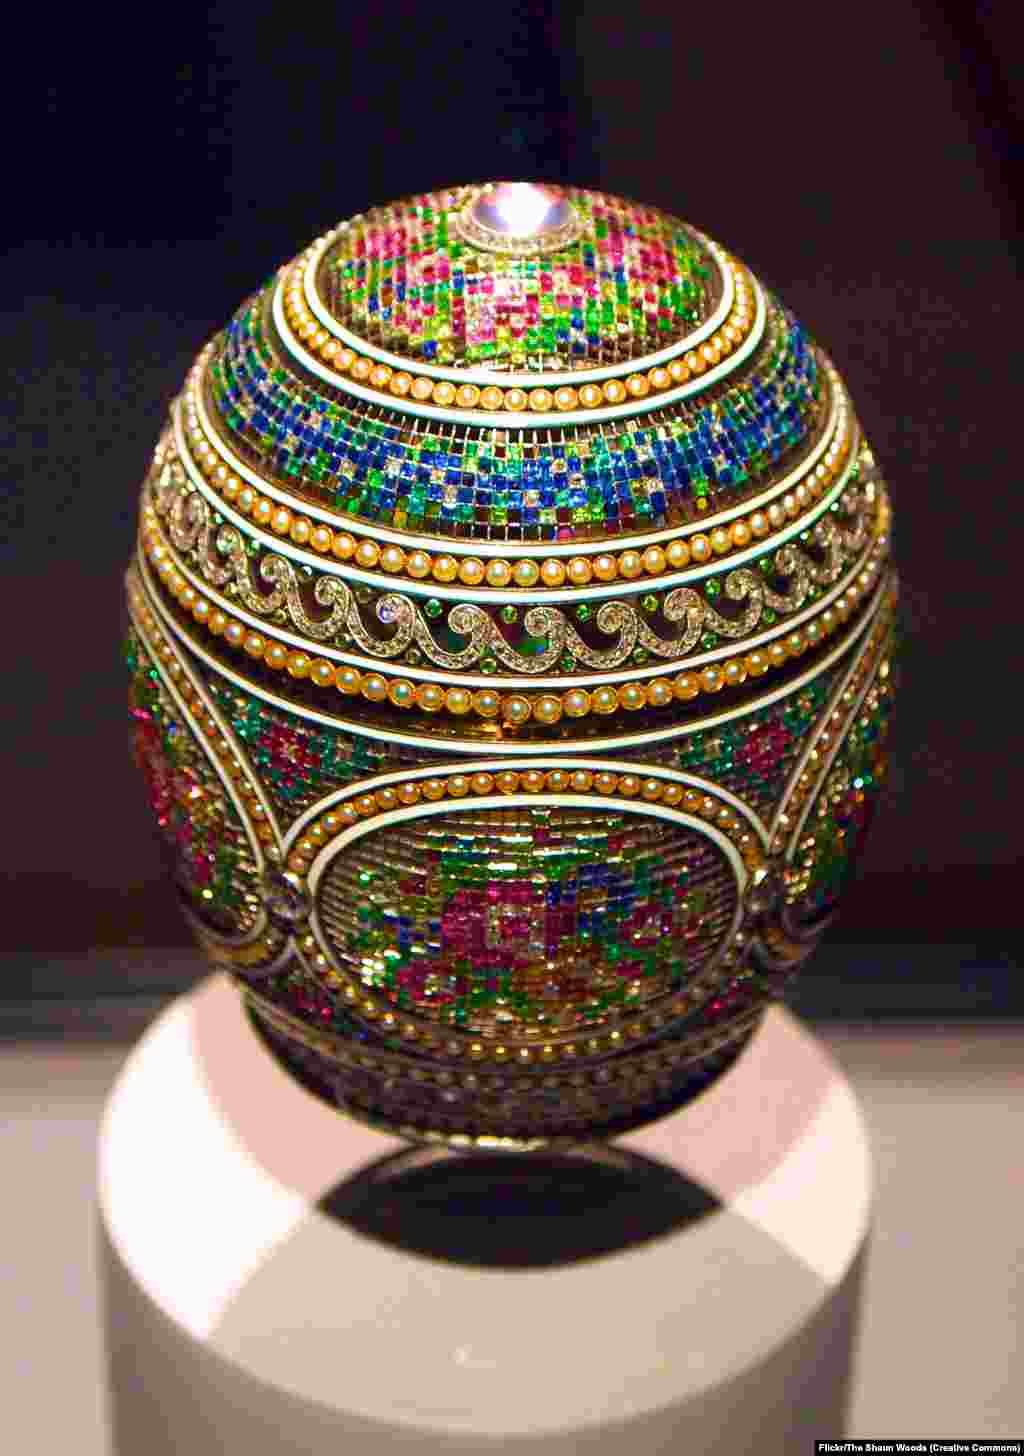 The Mosaic Egg. In Russia, it is tradition to gift loved ones decorated eggshells during Easter as a symbol of rebirth and fertility. The tsars and their chosen jeweler raised this Orthodox Christian tradition to a spectacular art form. But at the turn of the century, as diamonds twinkled in the royal drawing rooms, Russia was sliding into turmoil.